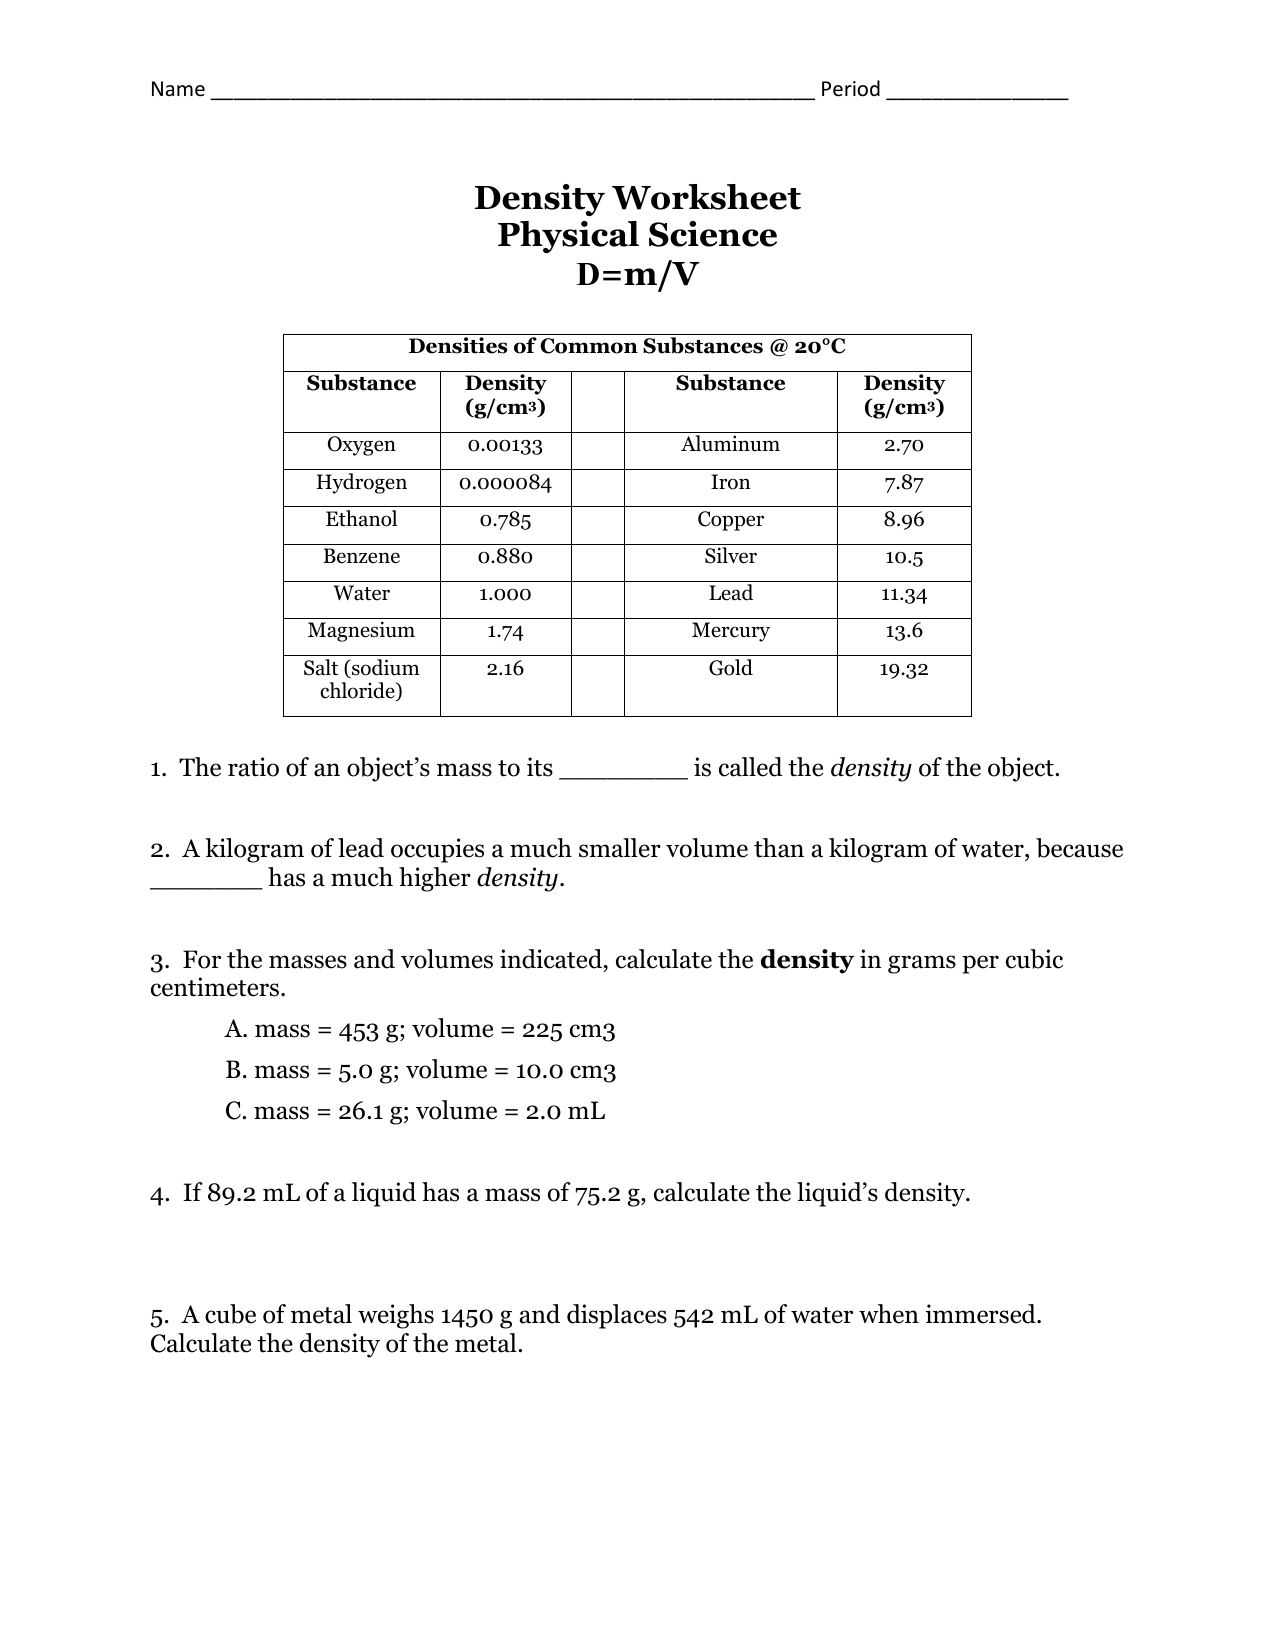 Physical Science Worksheet Answers The Best Worksheets Image